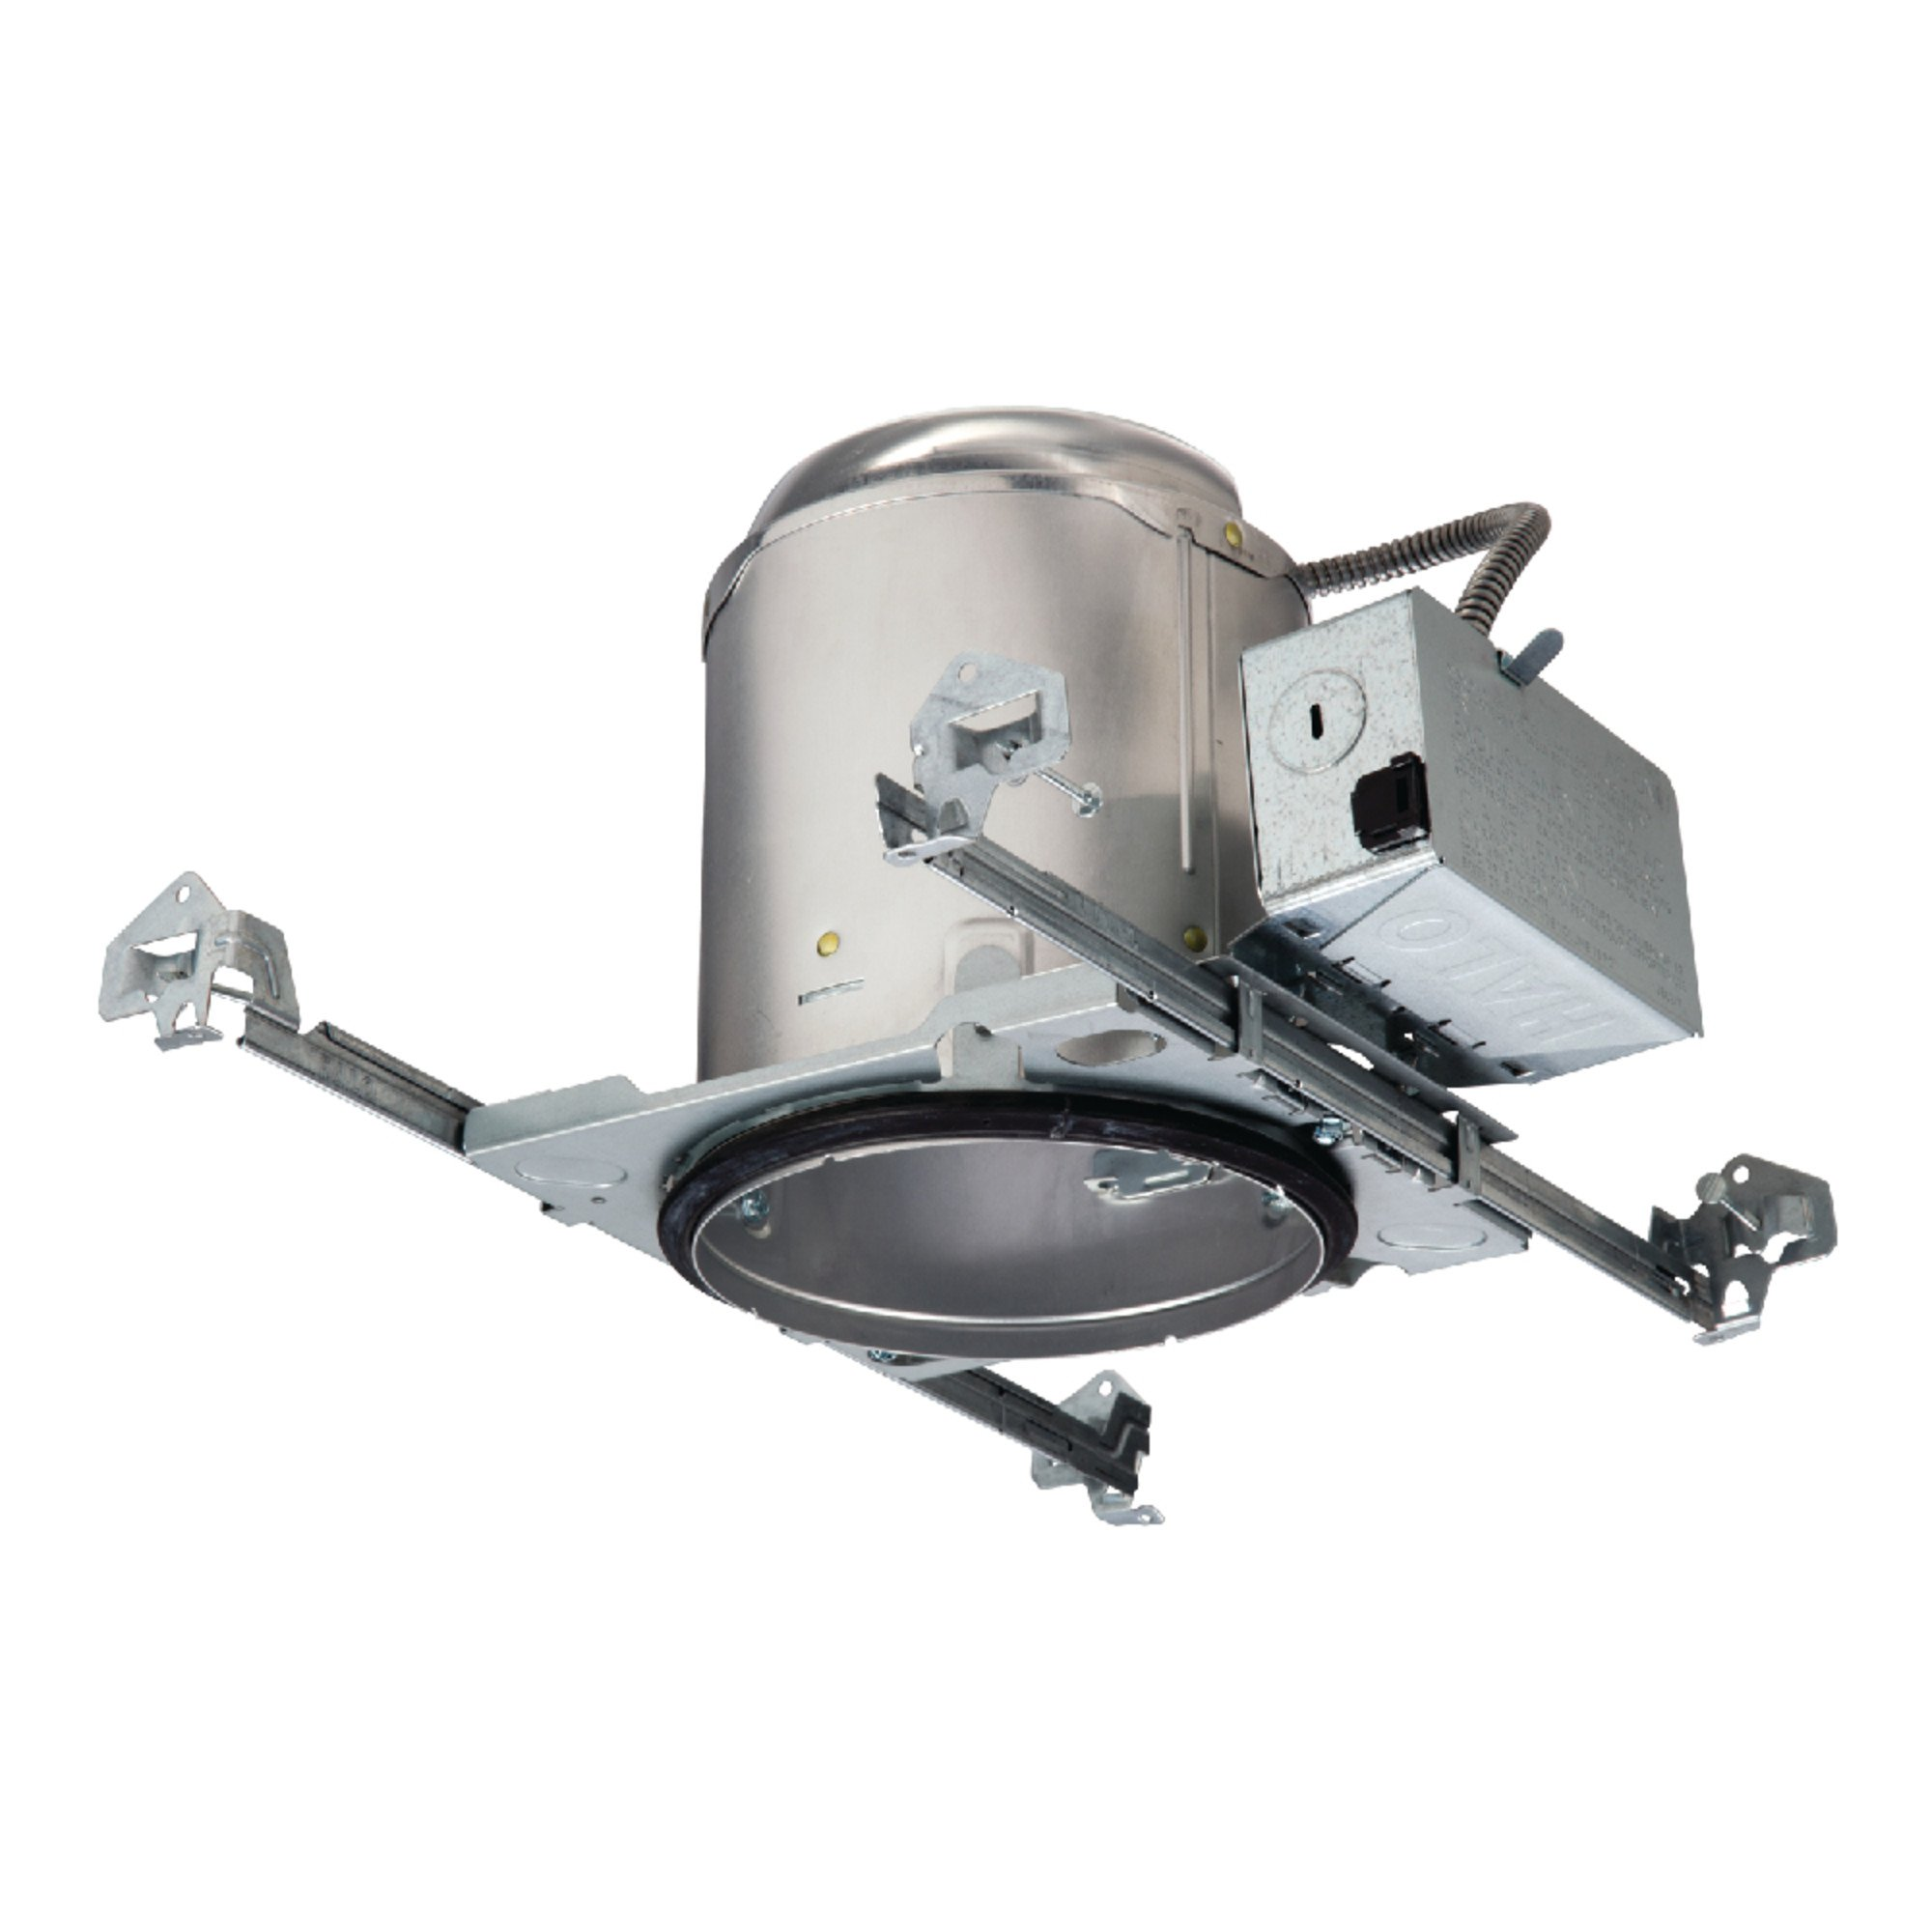 Halo E5ICAT E26 Series Recessed Lighting New Construction Insulation Contact Rated Air-Tite Housing, 6'', Aluminum